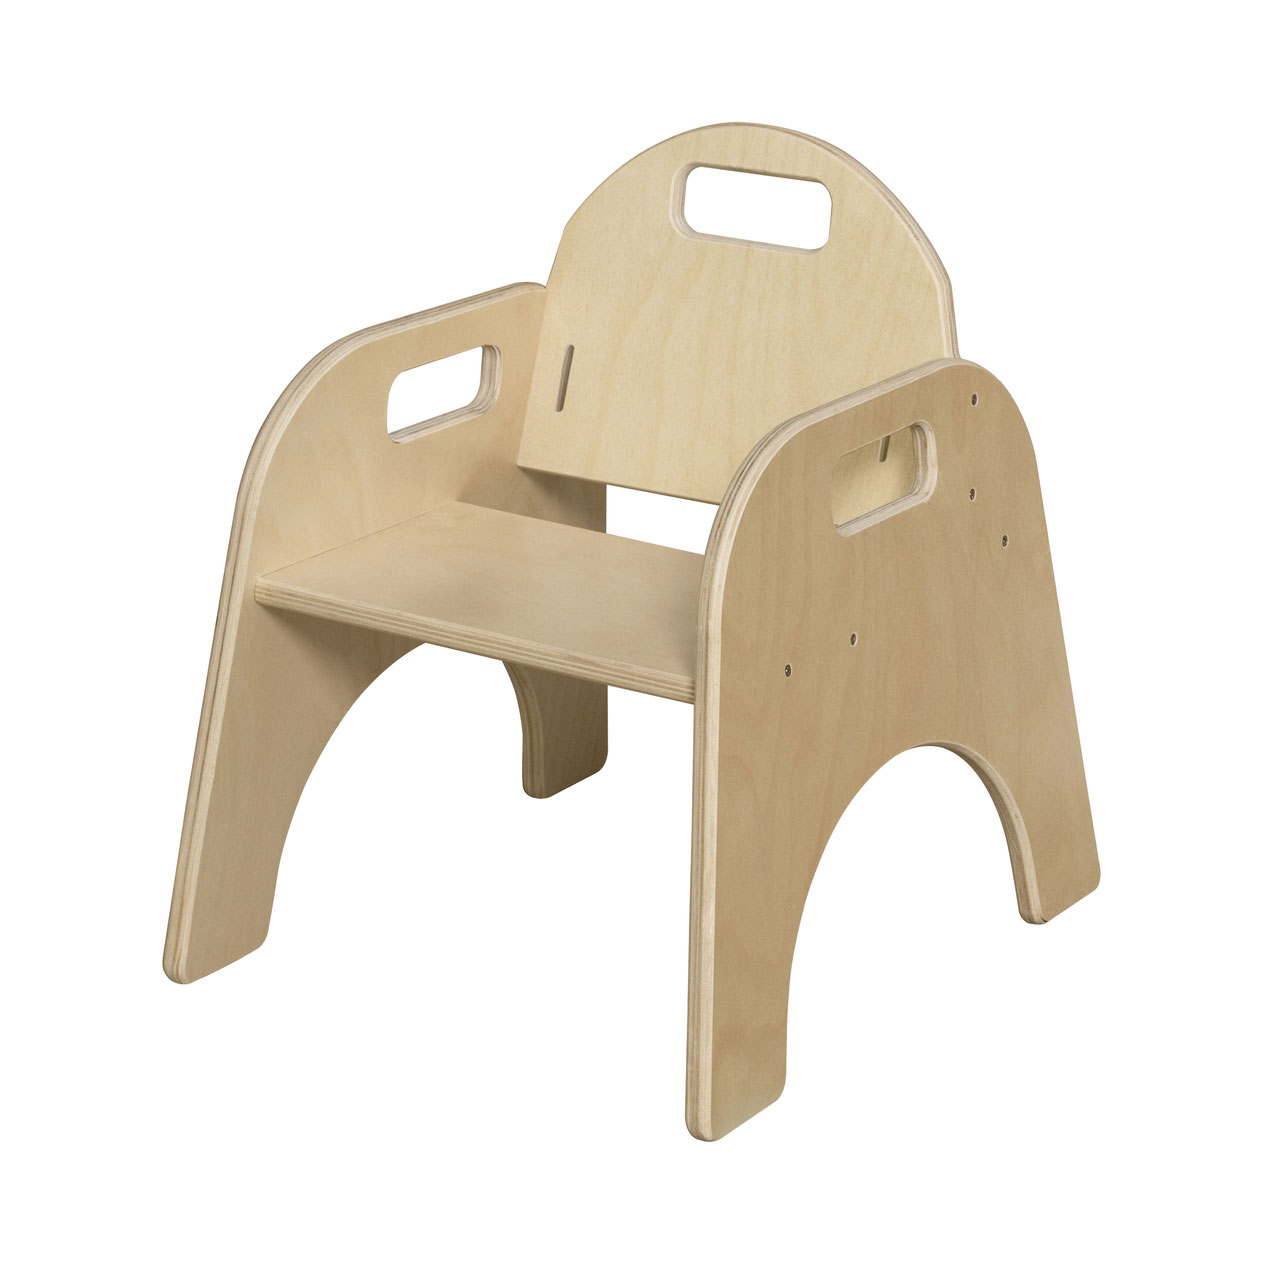 woodie-chair-9-h